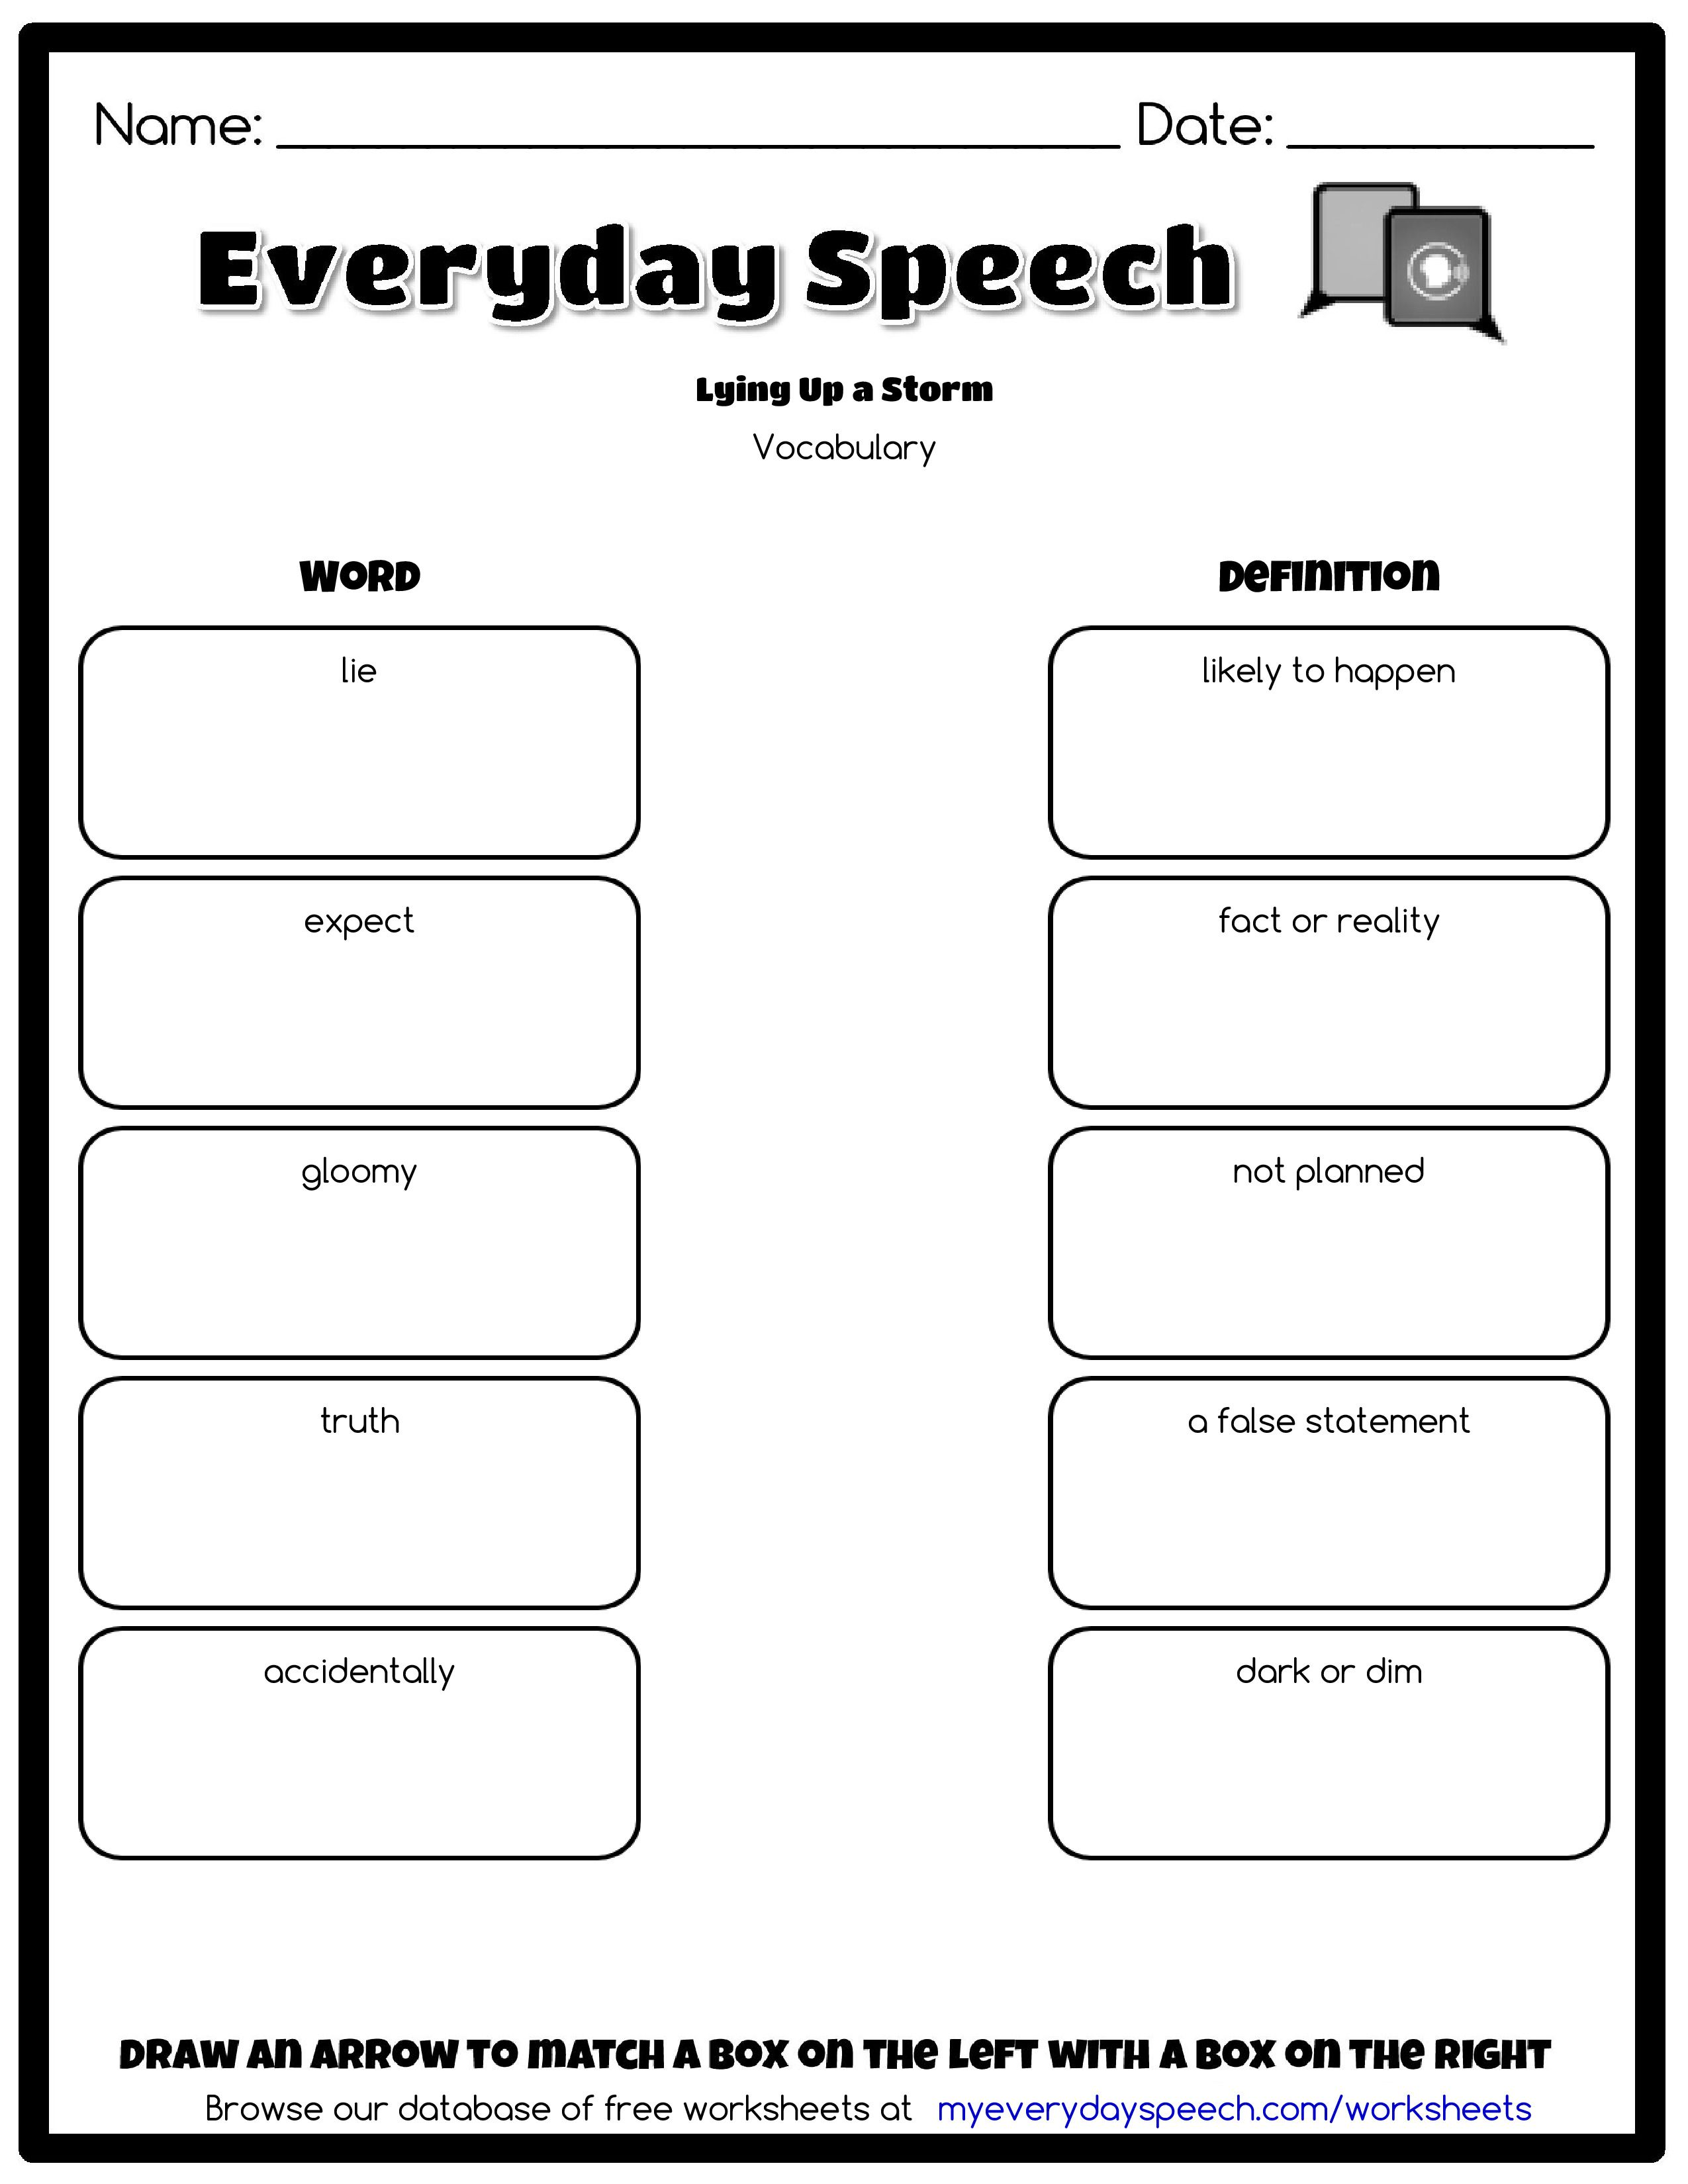 Check Out The Worksheet I Just Made Using Everyday Speechs